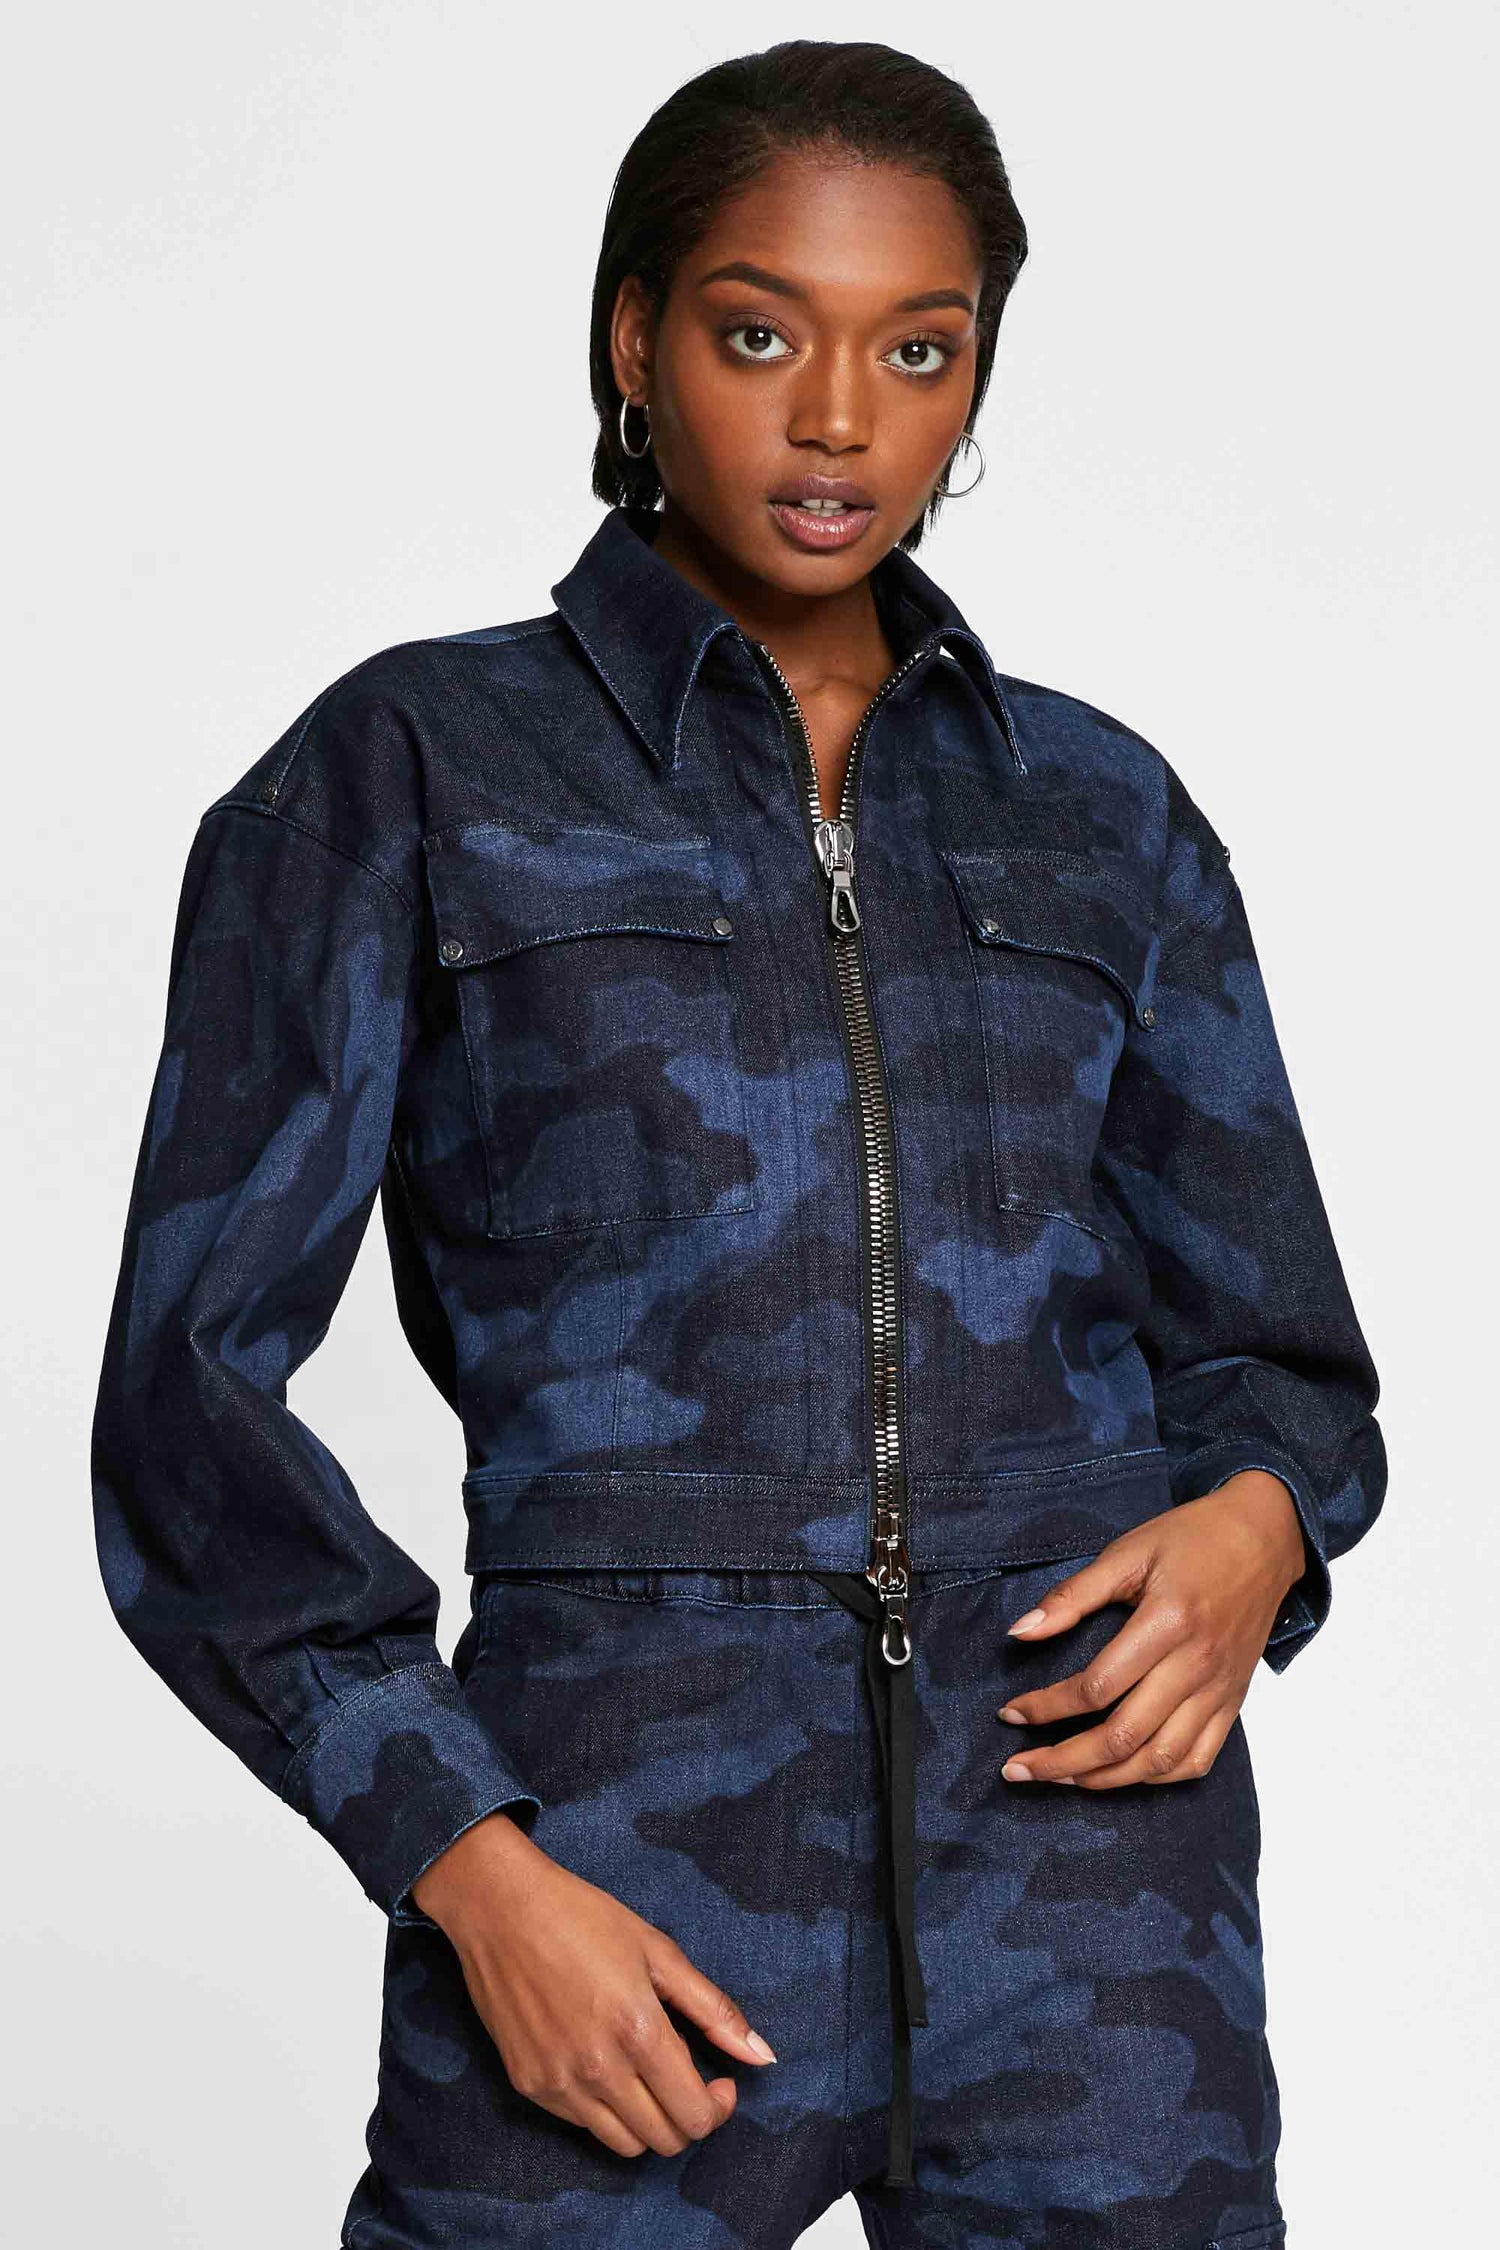 https://cdn.shopify.com/s/files/1/2973/0680/files/womens_military_jacket.mp4?11295085260309446073